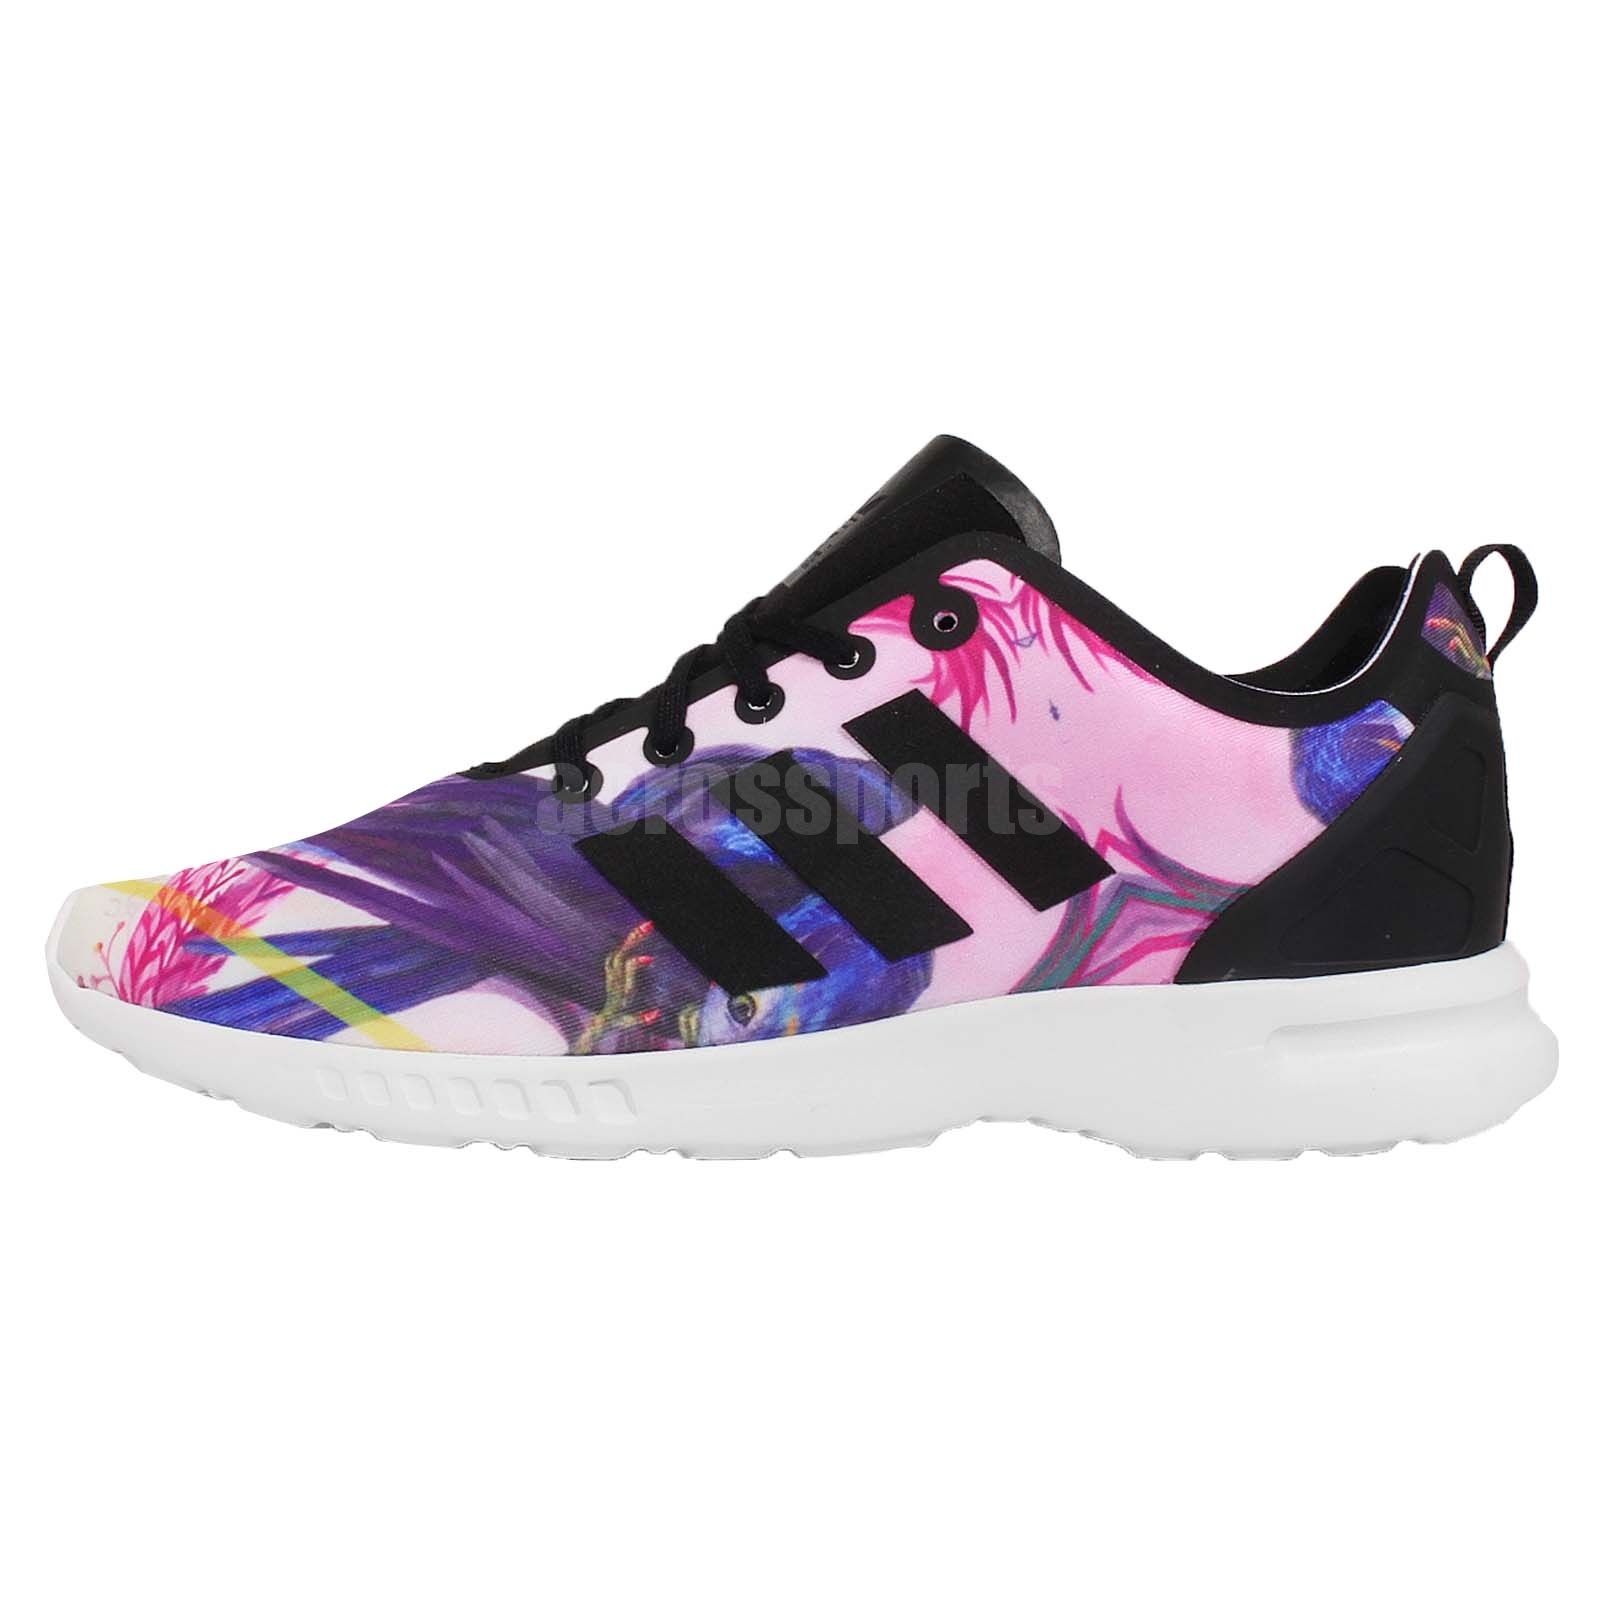 adidas Originals ZX Flux Smooth W Zebra Print Floral Womens Running Shoes S82937